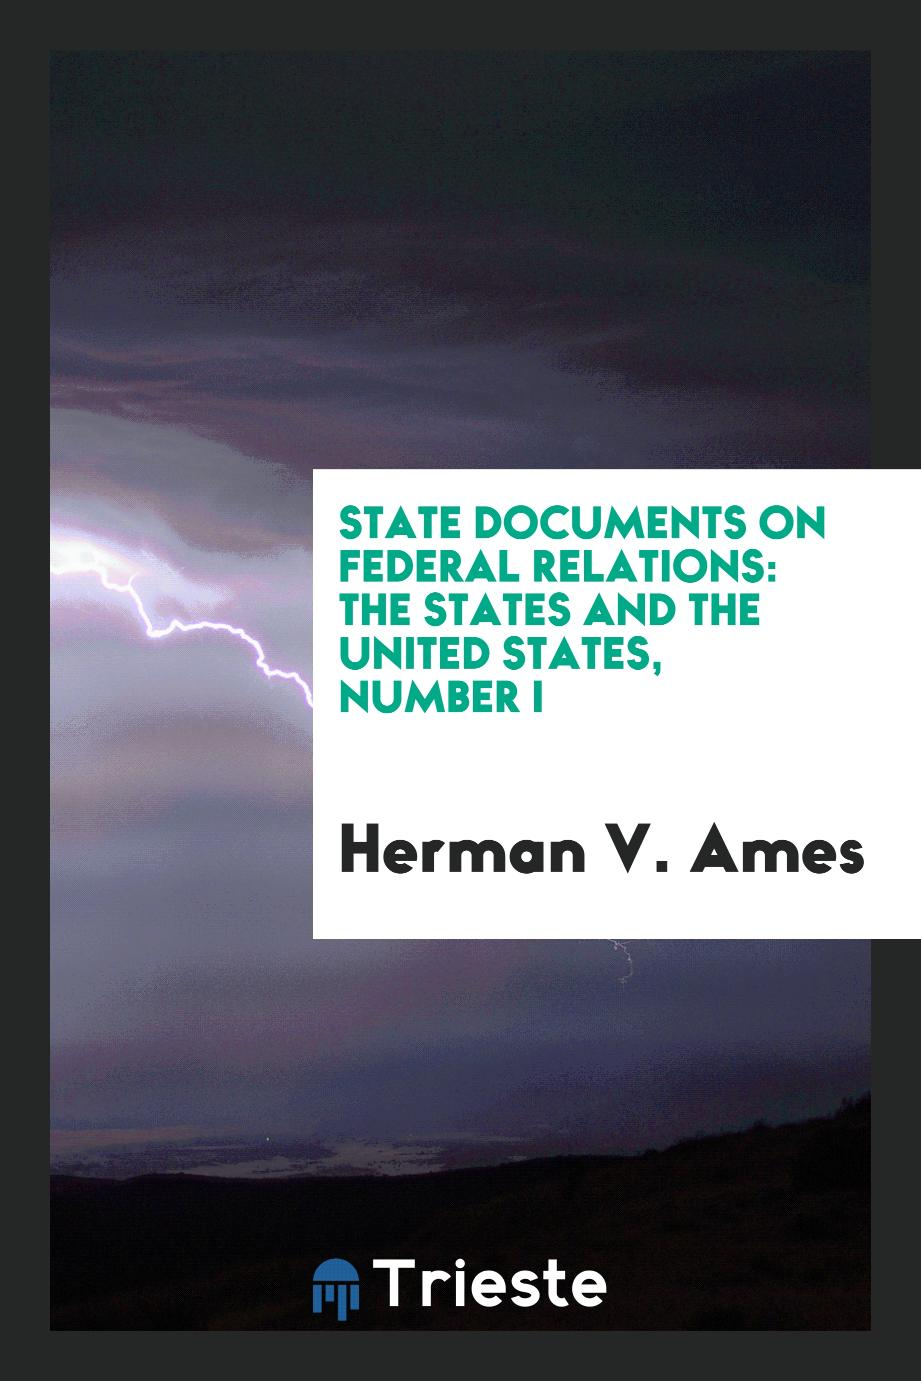 State documents on Federal relations: the States and the United States, Number I